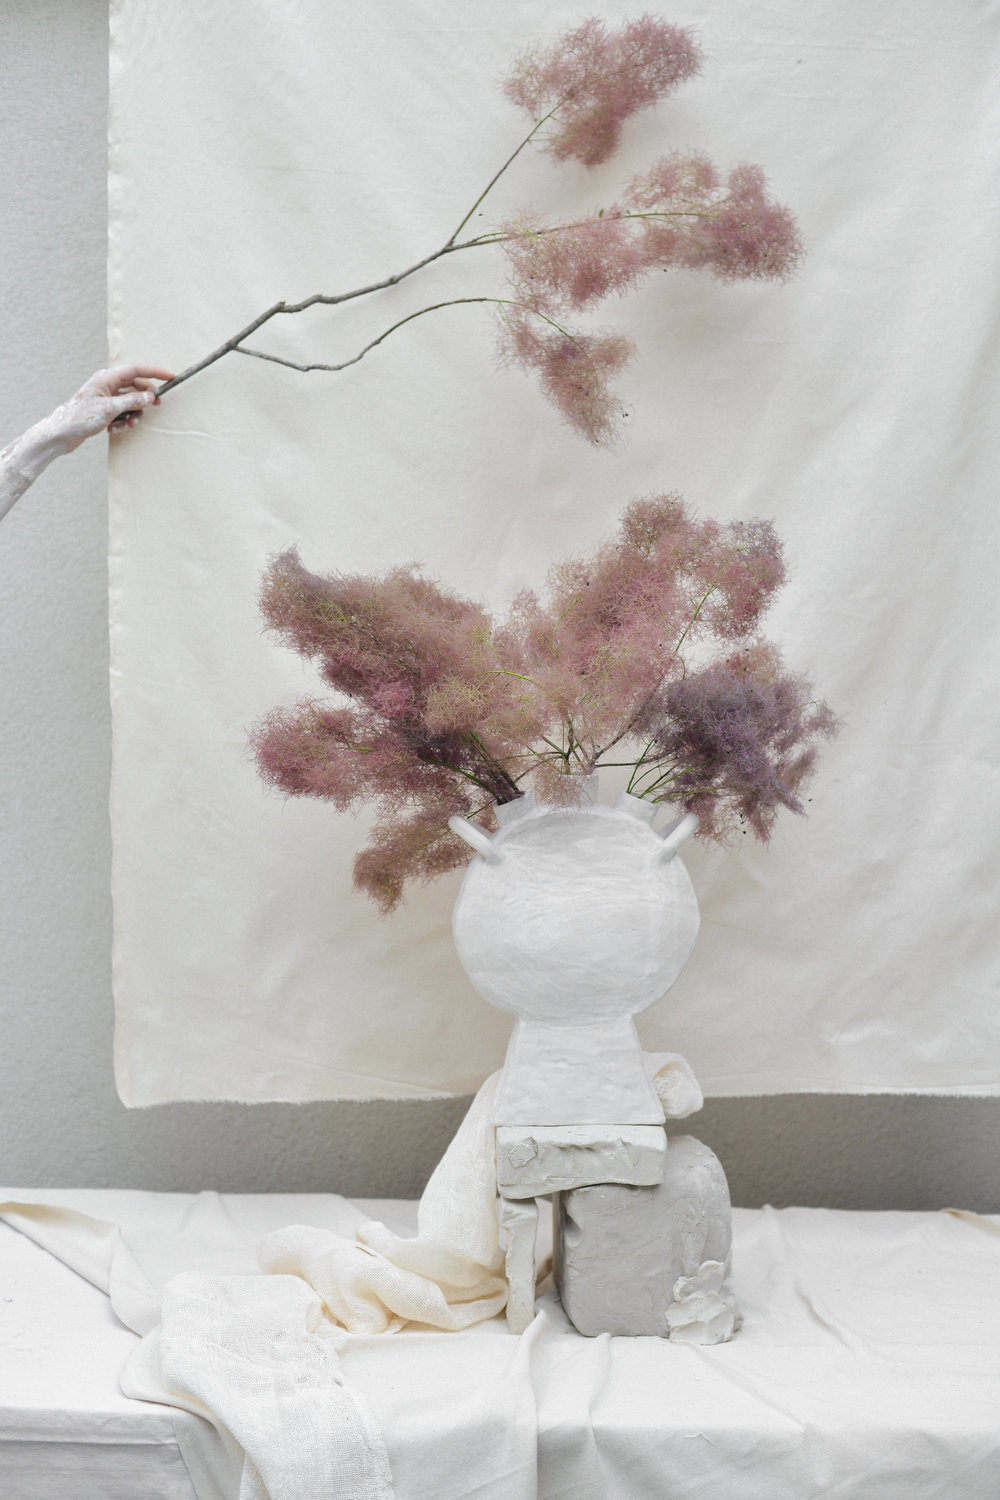 Photo by Jenna Saraco, Styling, Floral and Vessel by Simone Bodmer-Turner